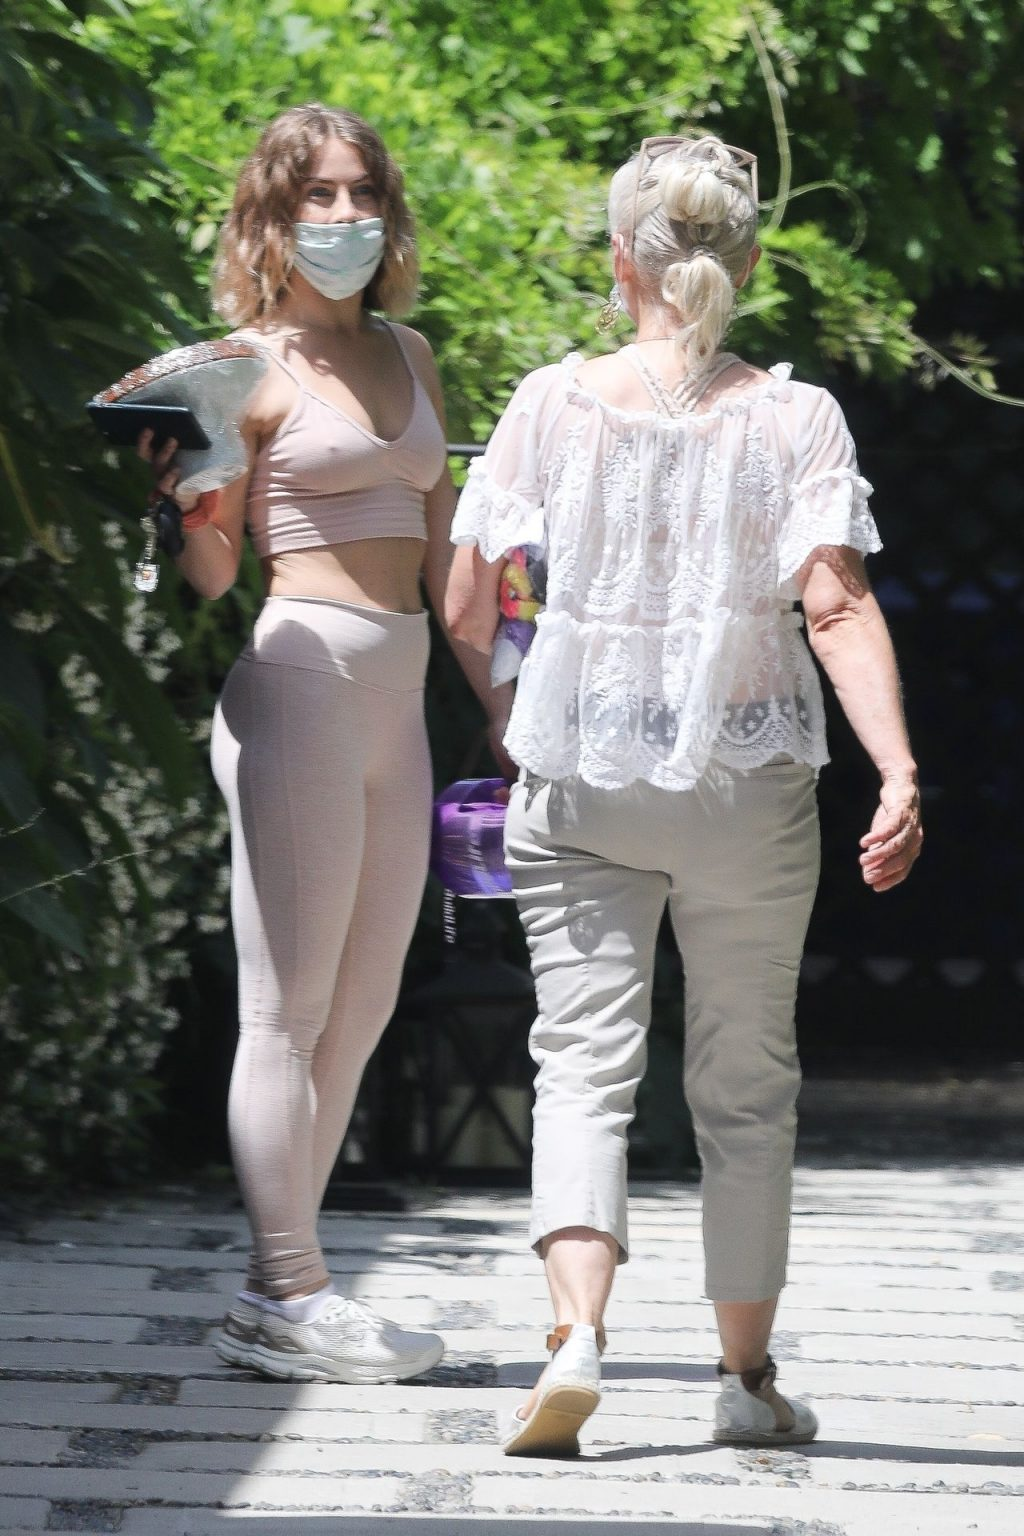 Ringless Julianne Hough Enjoys Brunch With Mom (38 Photos)